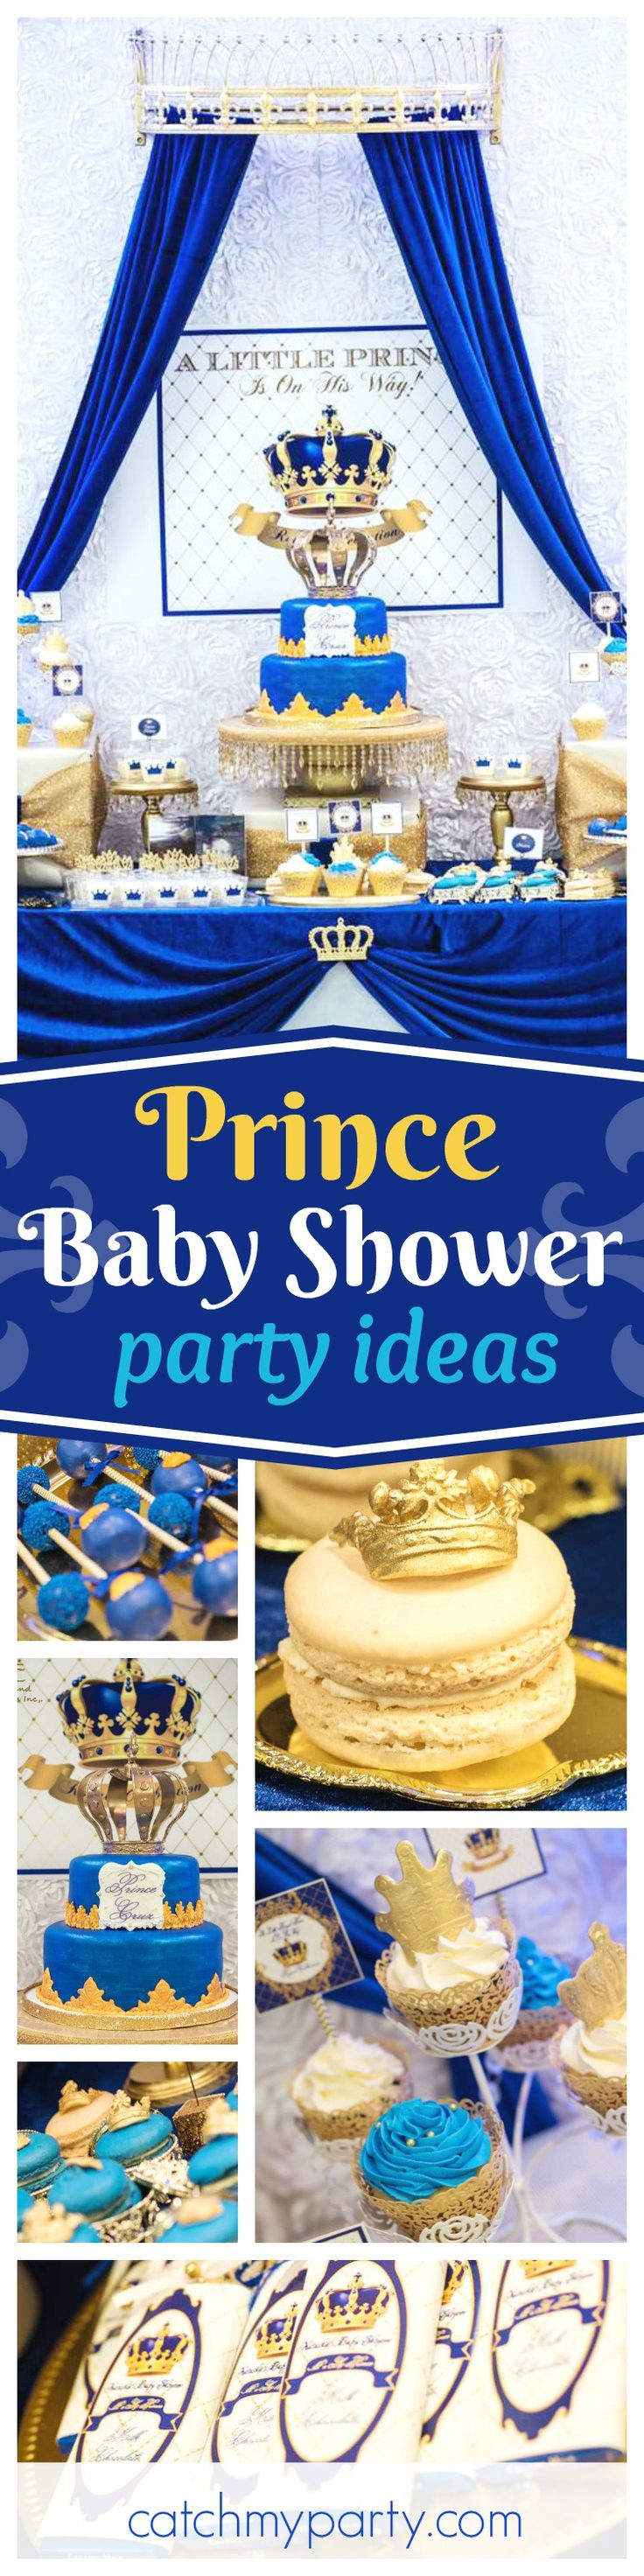 Best 25 Prince themed baby shower ideas on Pinterest